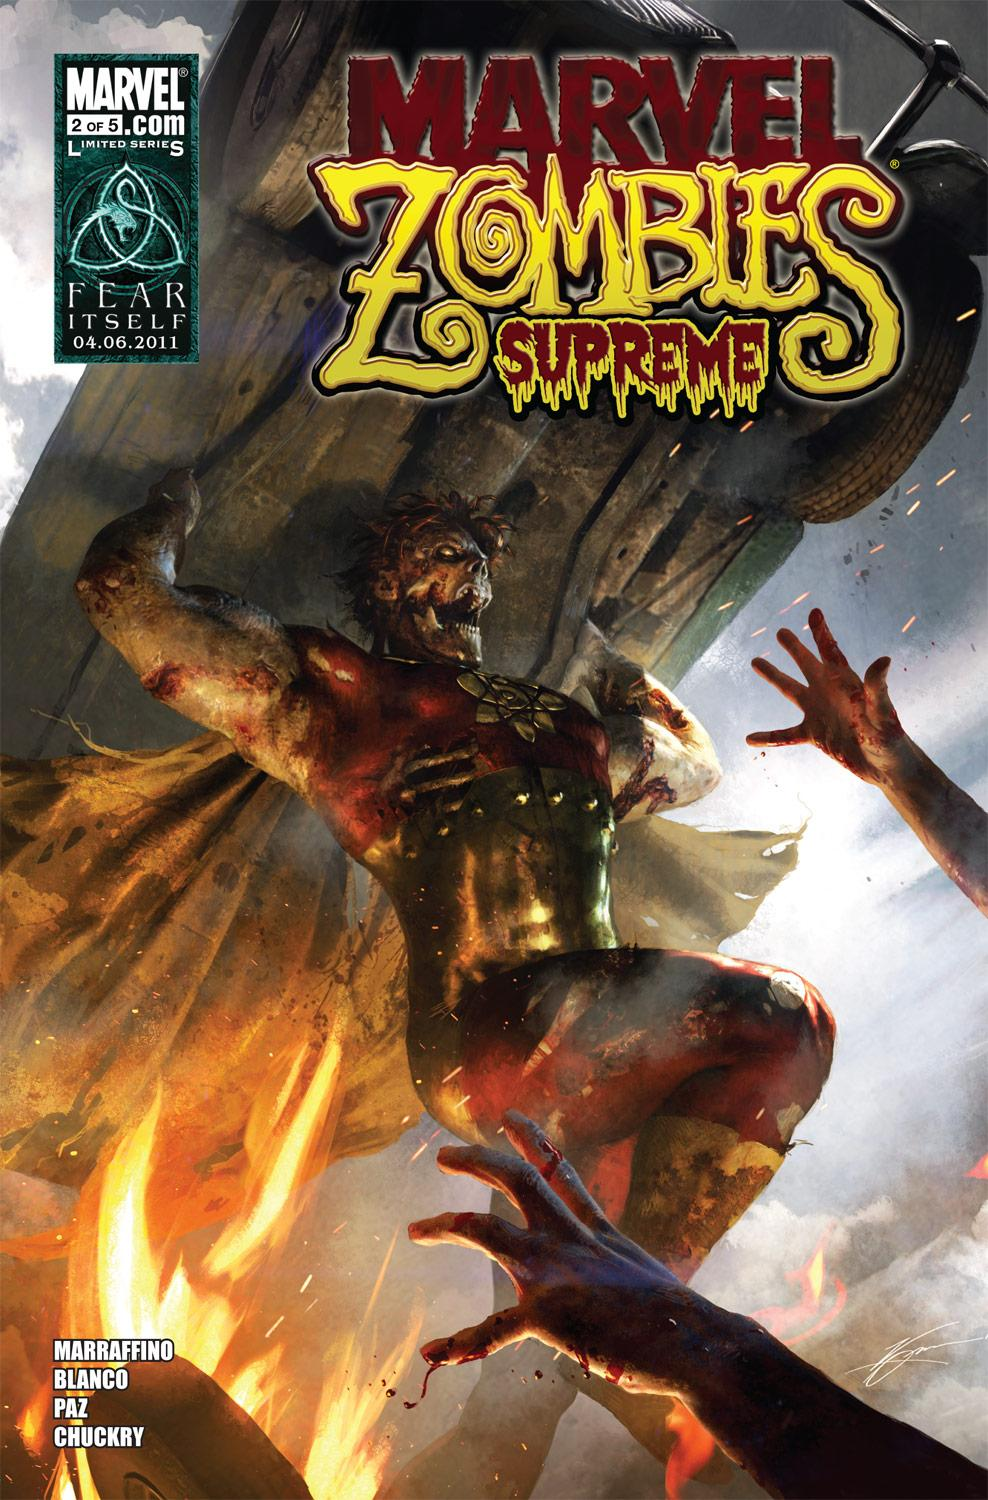 Marvel Zombies Supreme (2010) #2